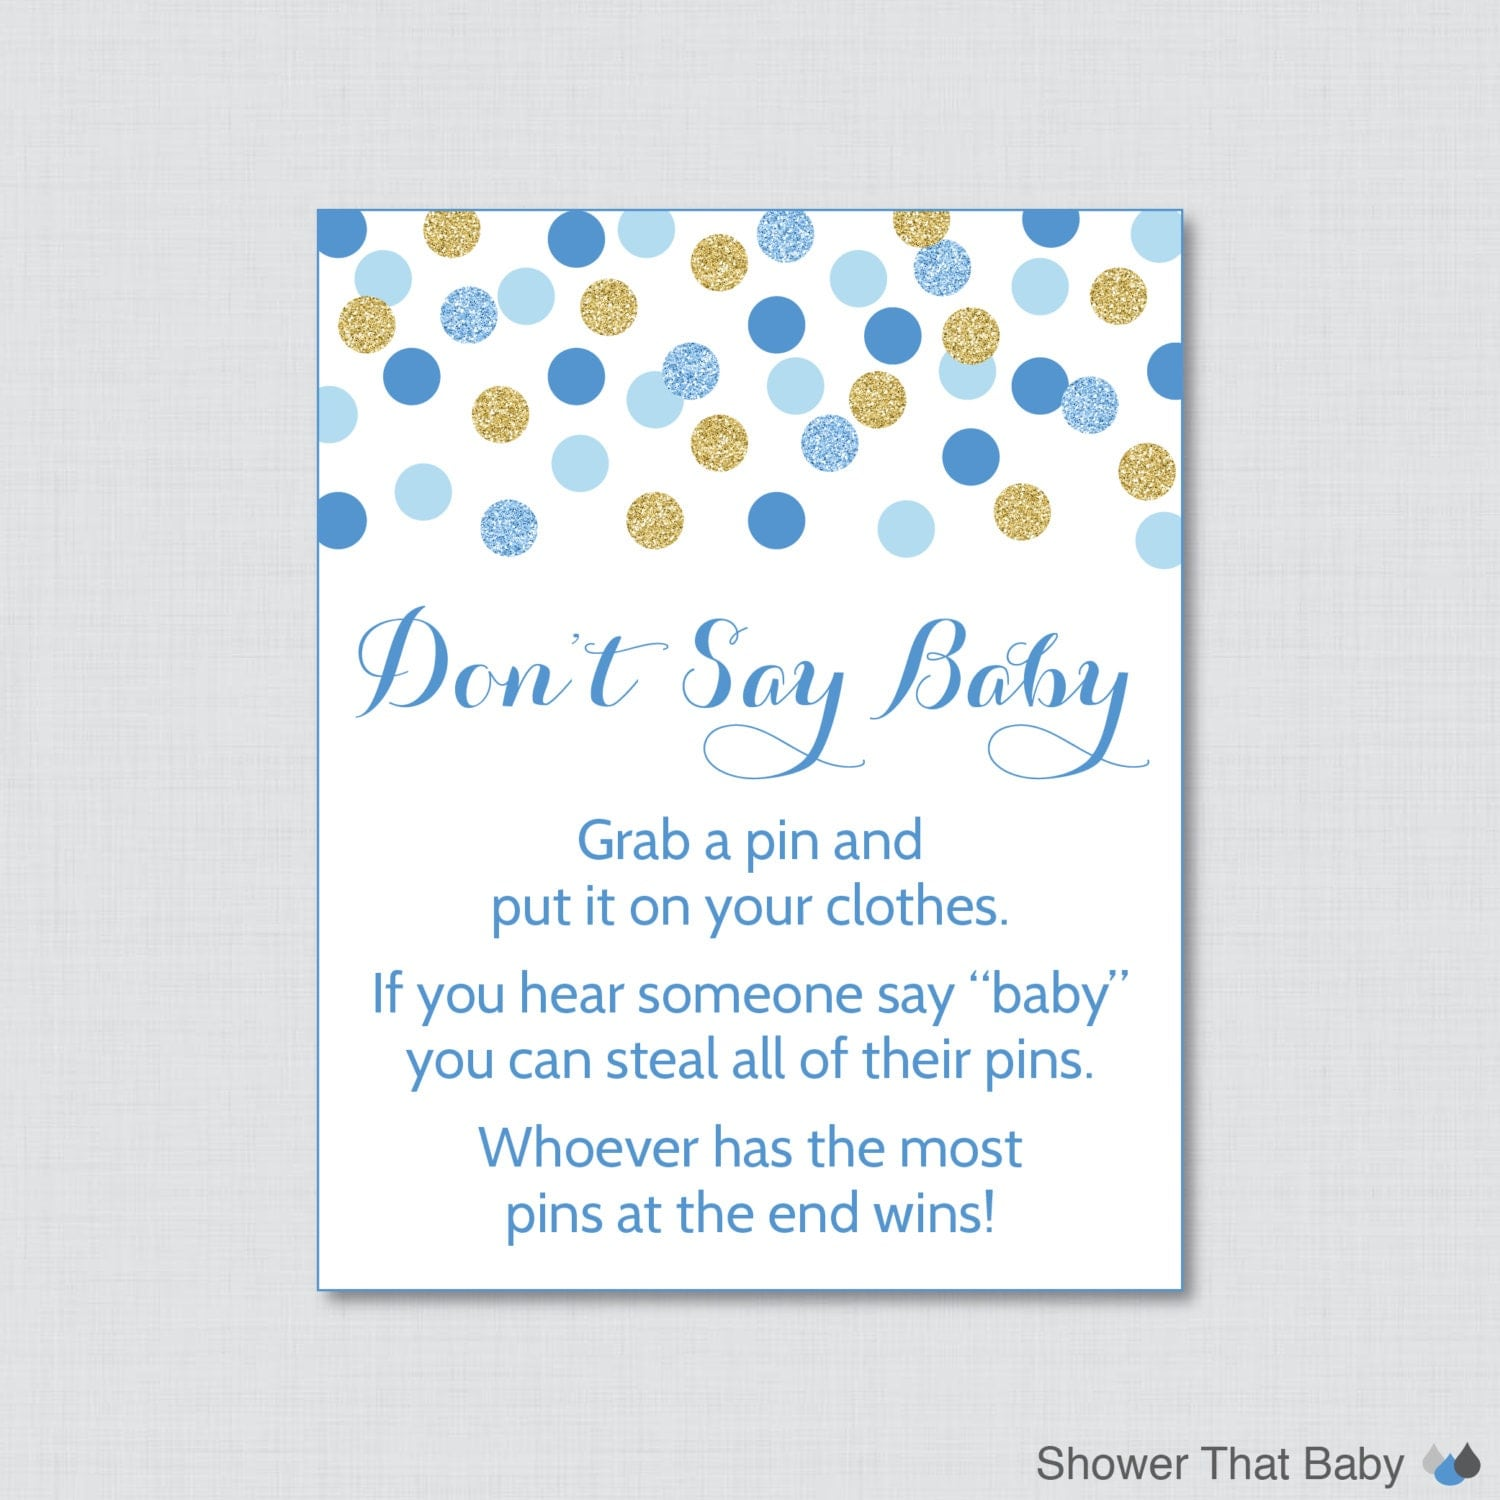 Smart image intended for don t say baby free printable